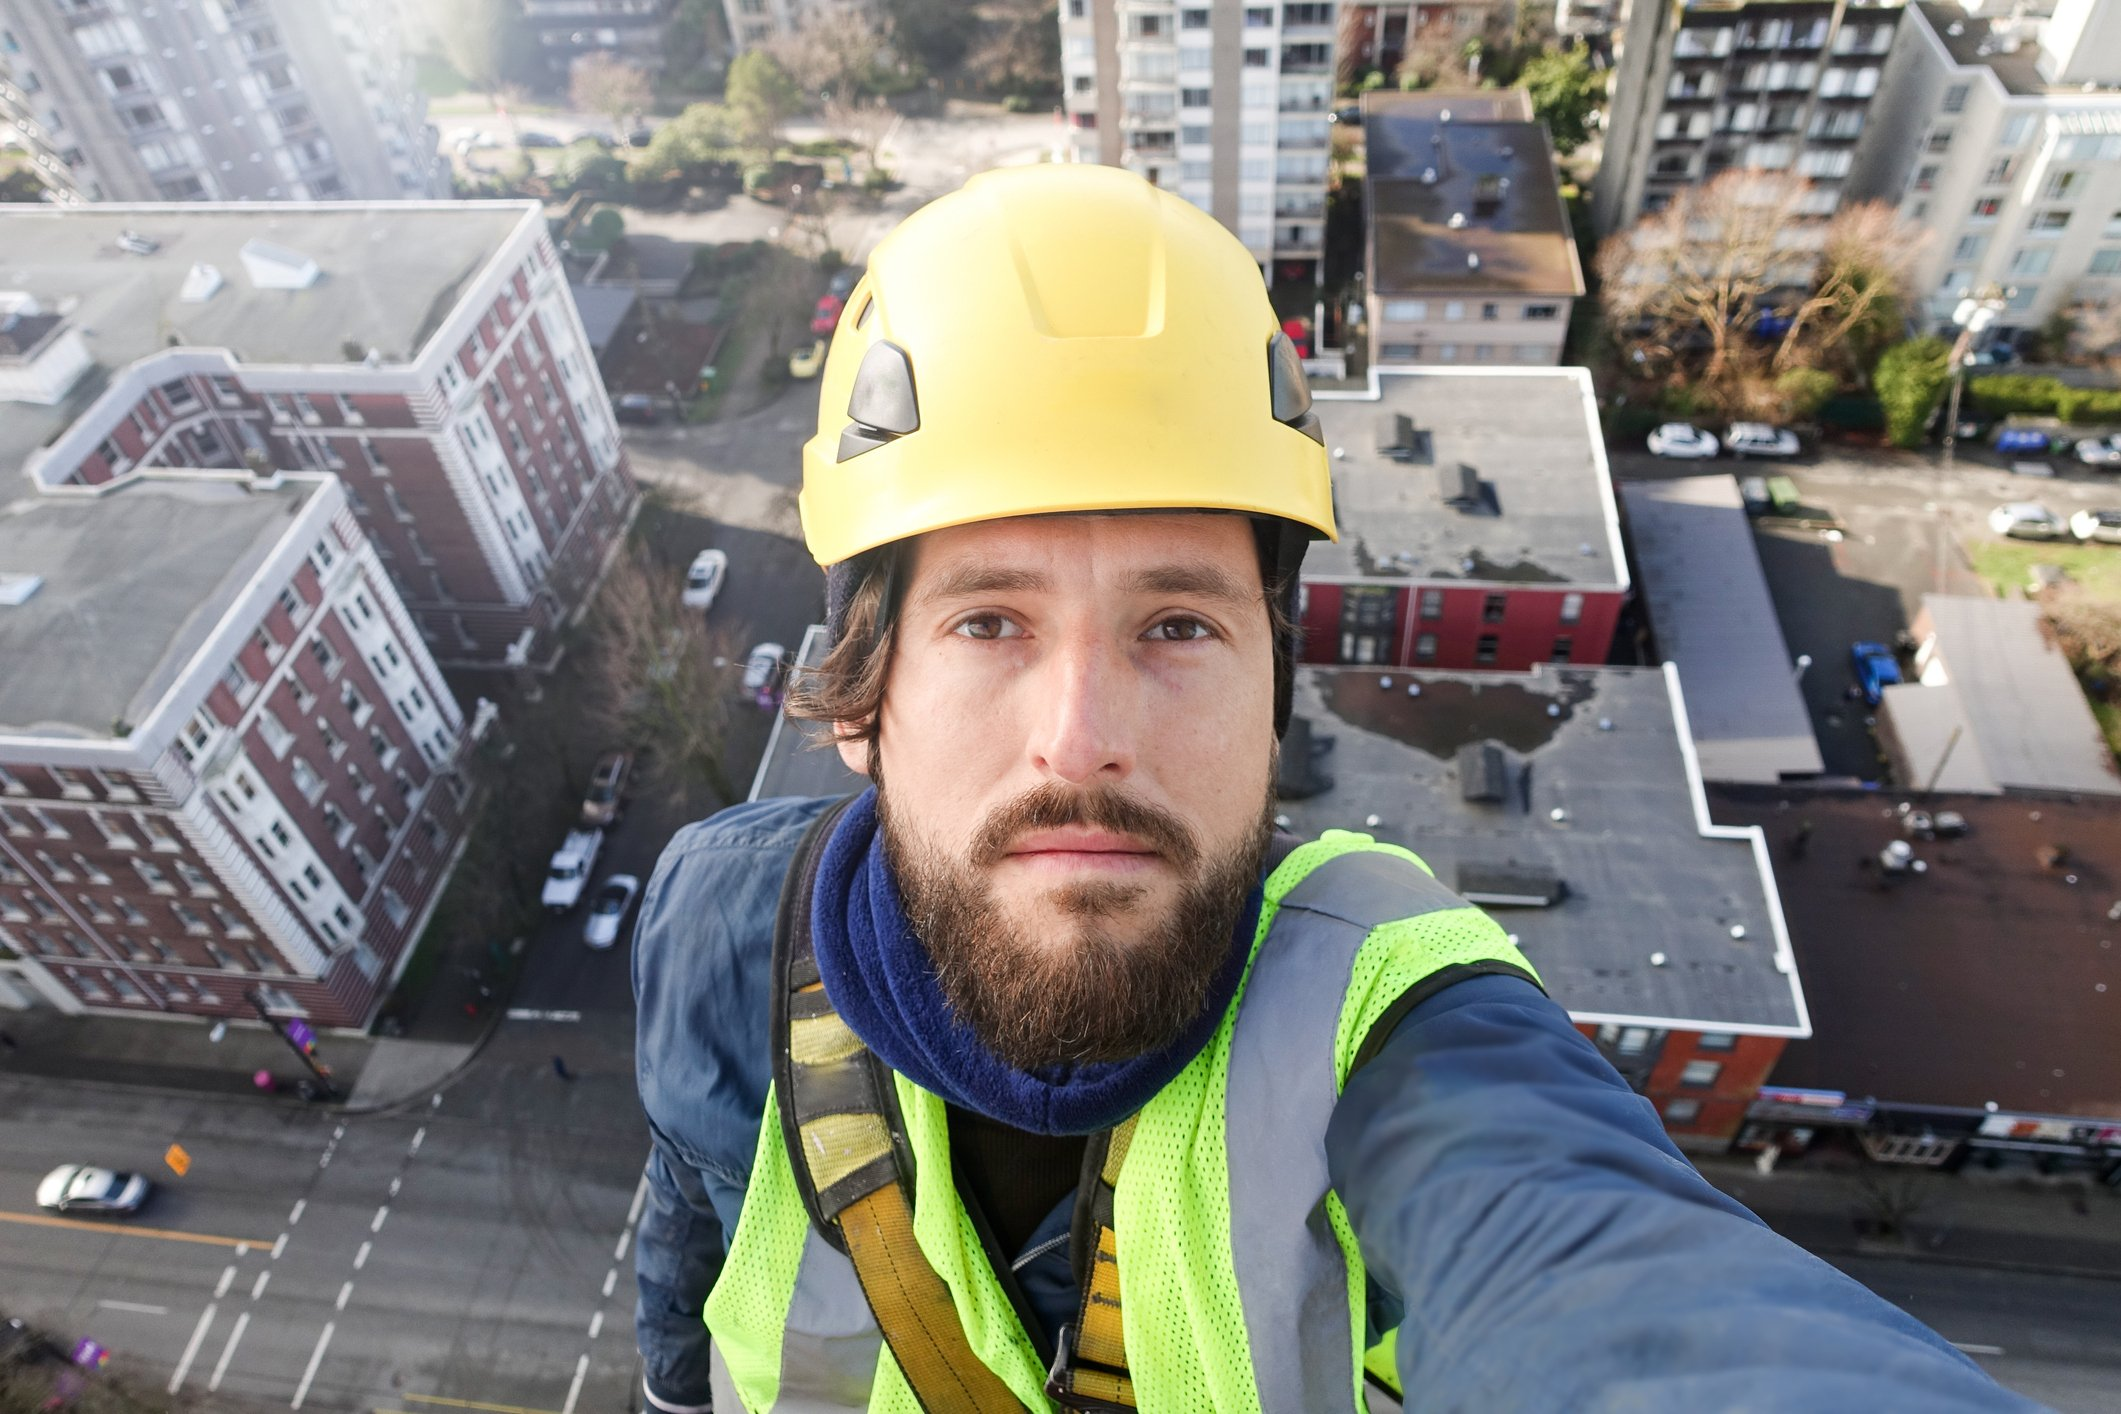 climbing equipment, Climbing, abseil, Clambering, Manual Worker, work at high, selfie, Vancouver, downtown